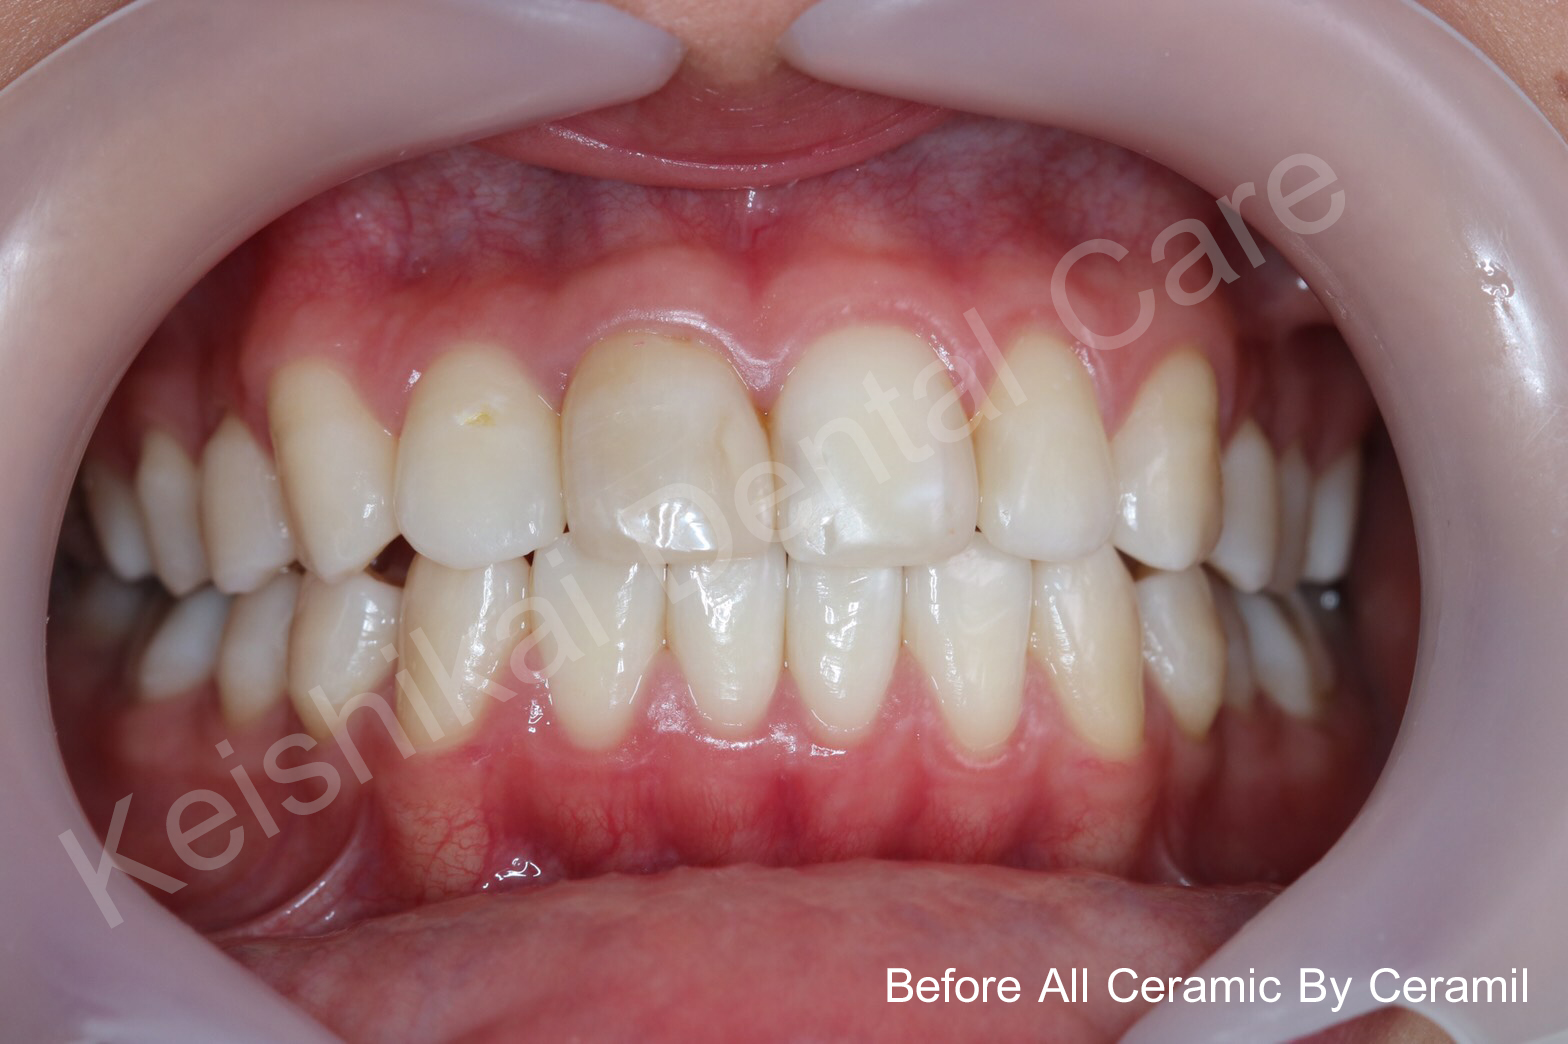 Before2-All Ceramic By Ceramil-keishikaidentalclinic